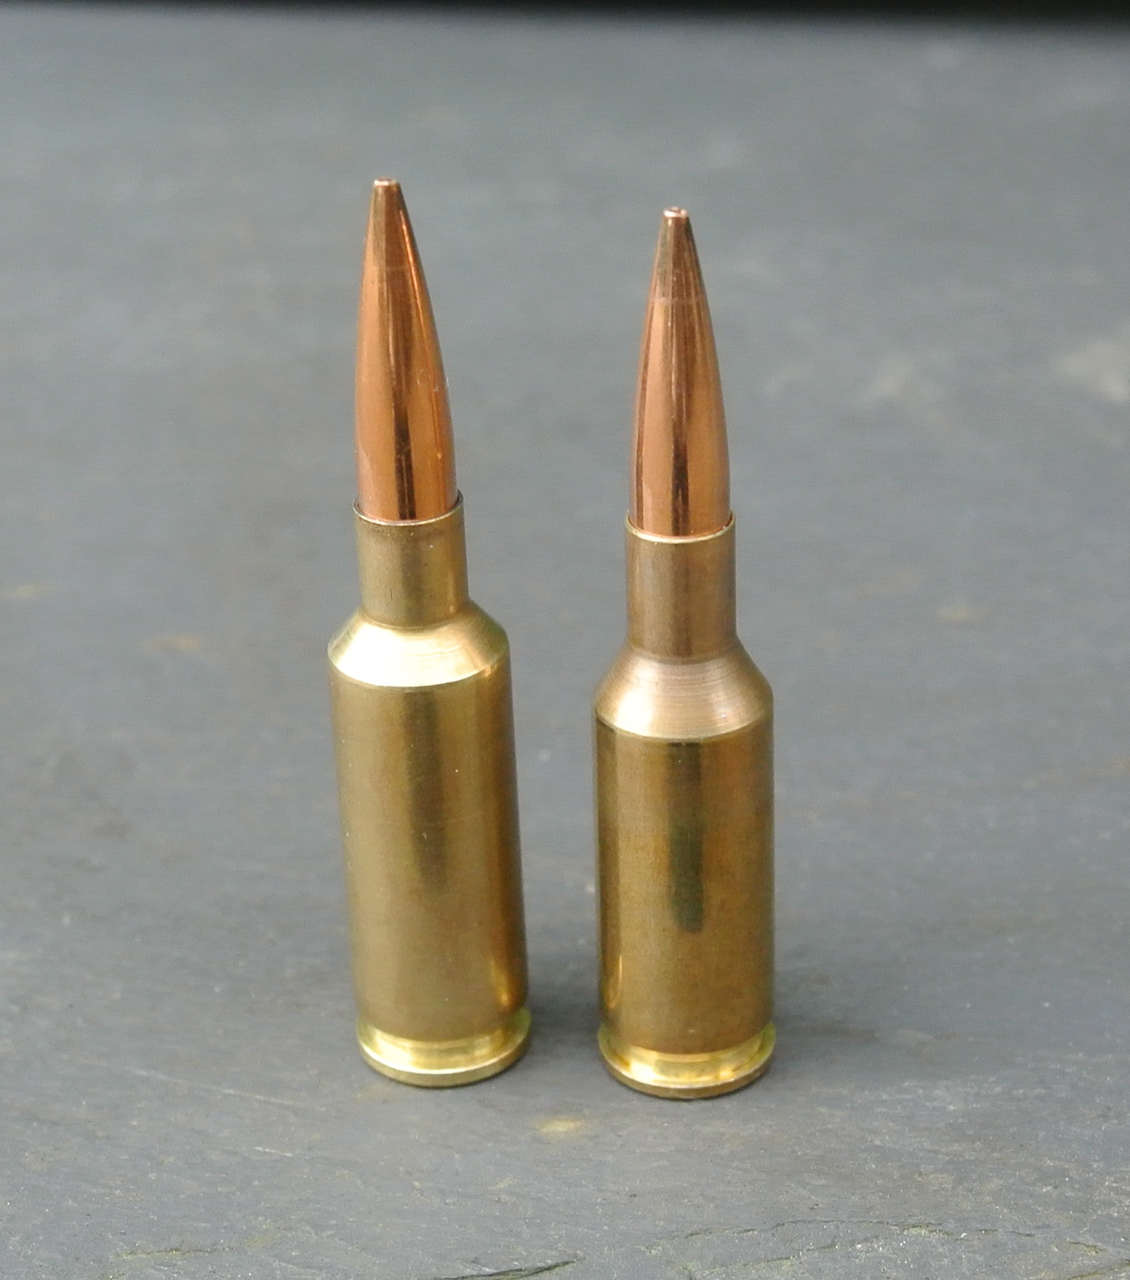 The New Norma 6mm Dasher   Target Shooter Magazine